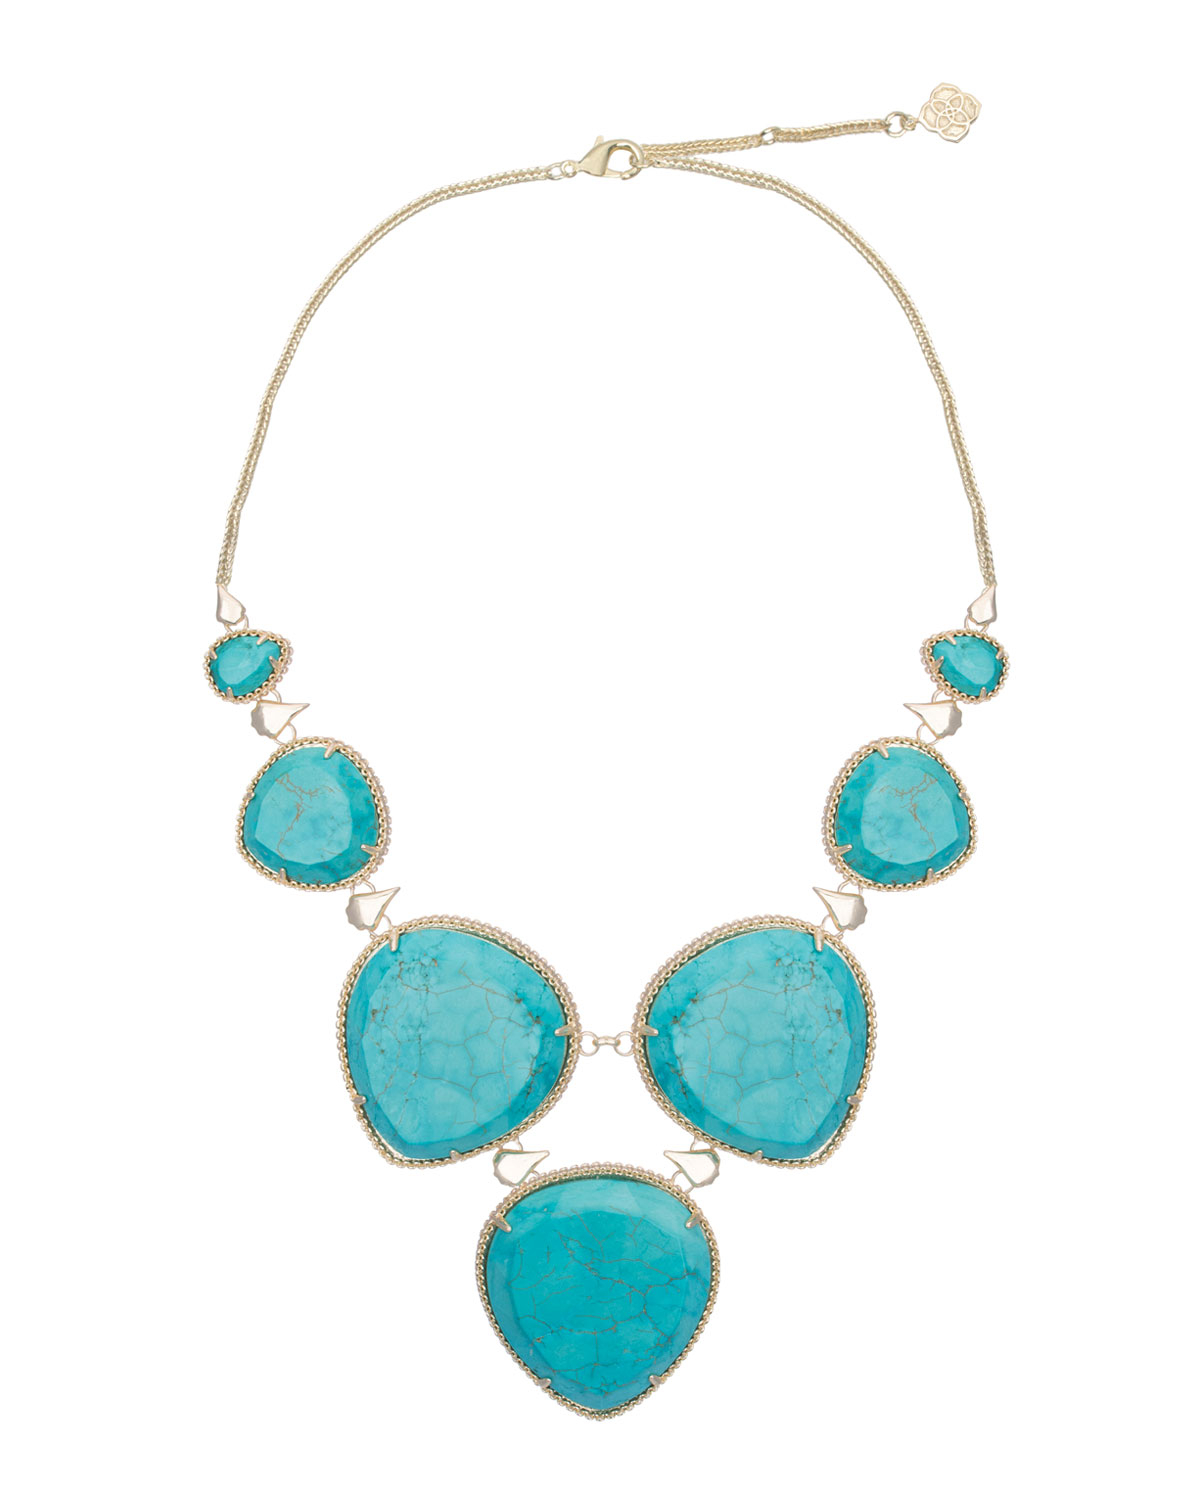 Kendra Scott Rebecca Necklace Turquoise In Blue Turquoise